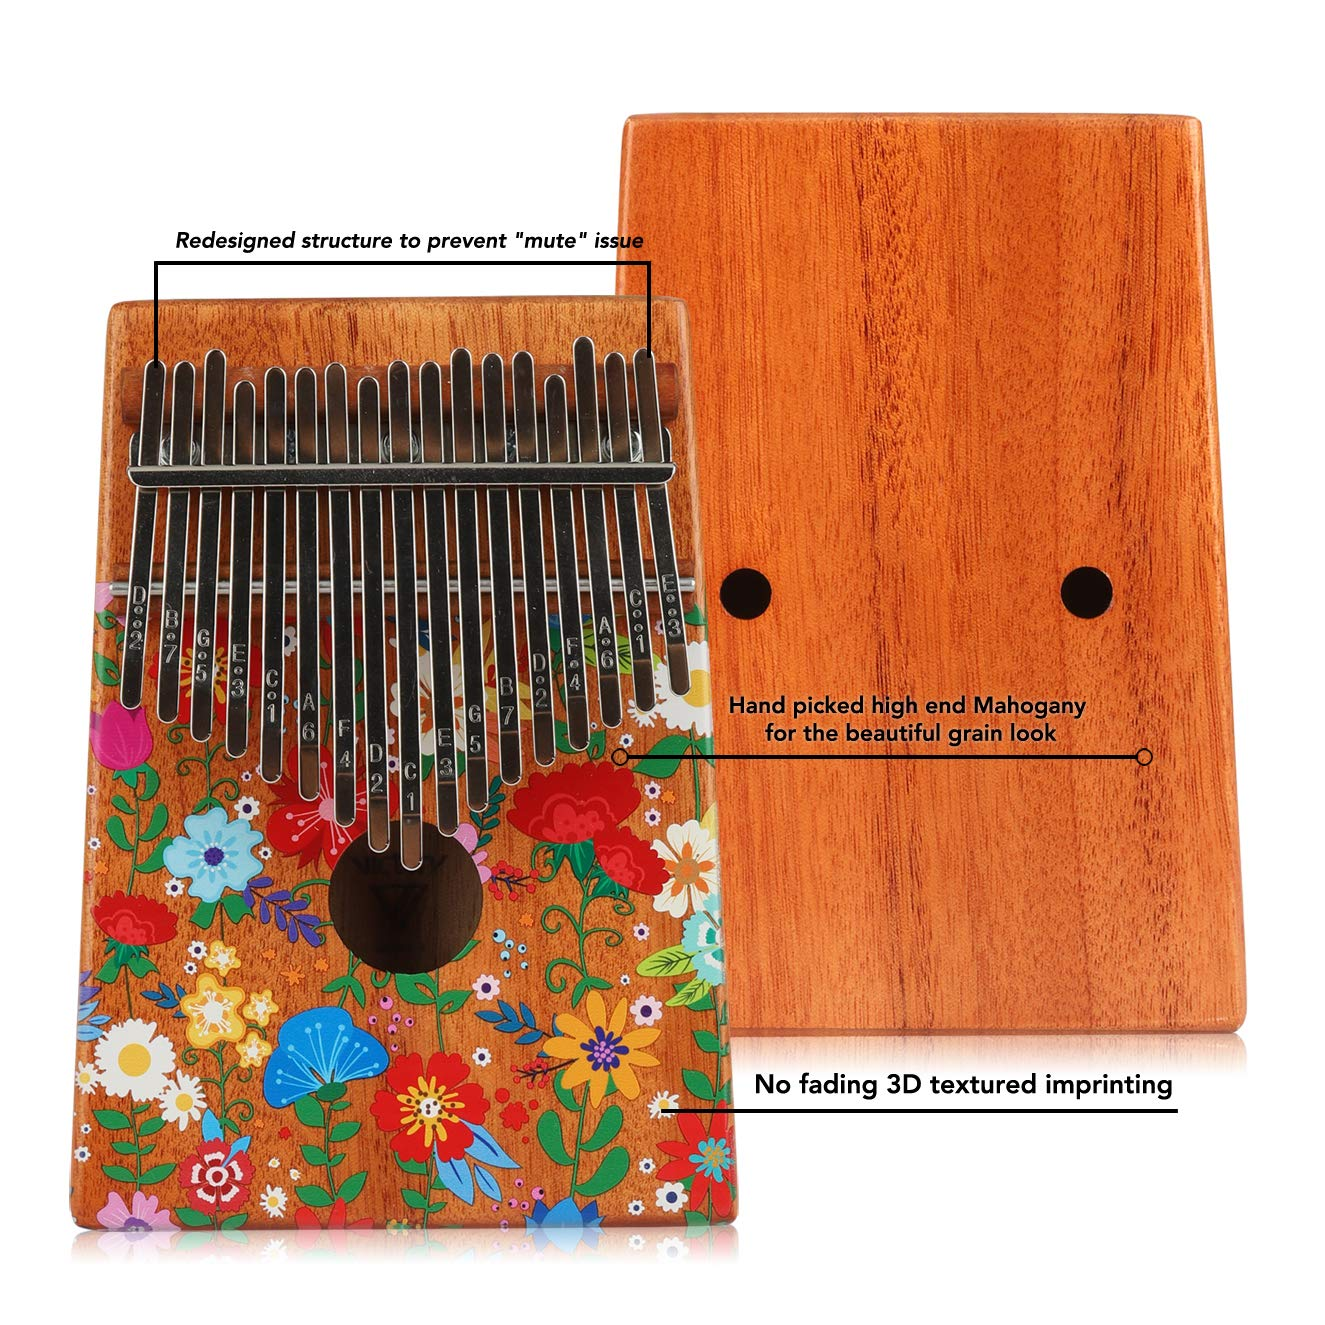 VI VICTORY 17 Key Colorful Kalimba African Thumb Piano Finger Percussion Keyboard Music Instruments - Carnation by VI VICTORY